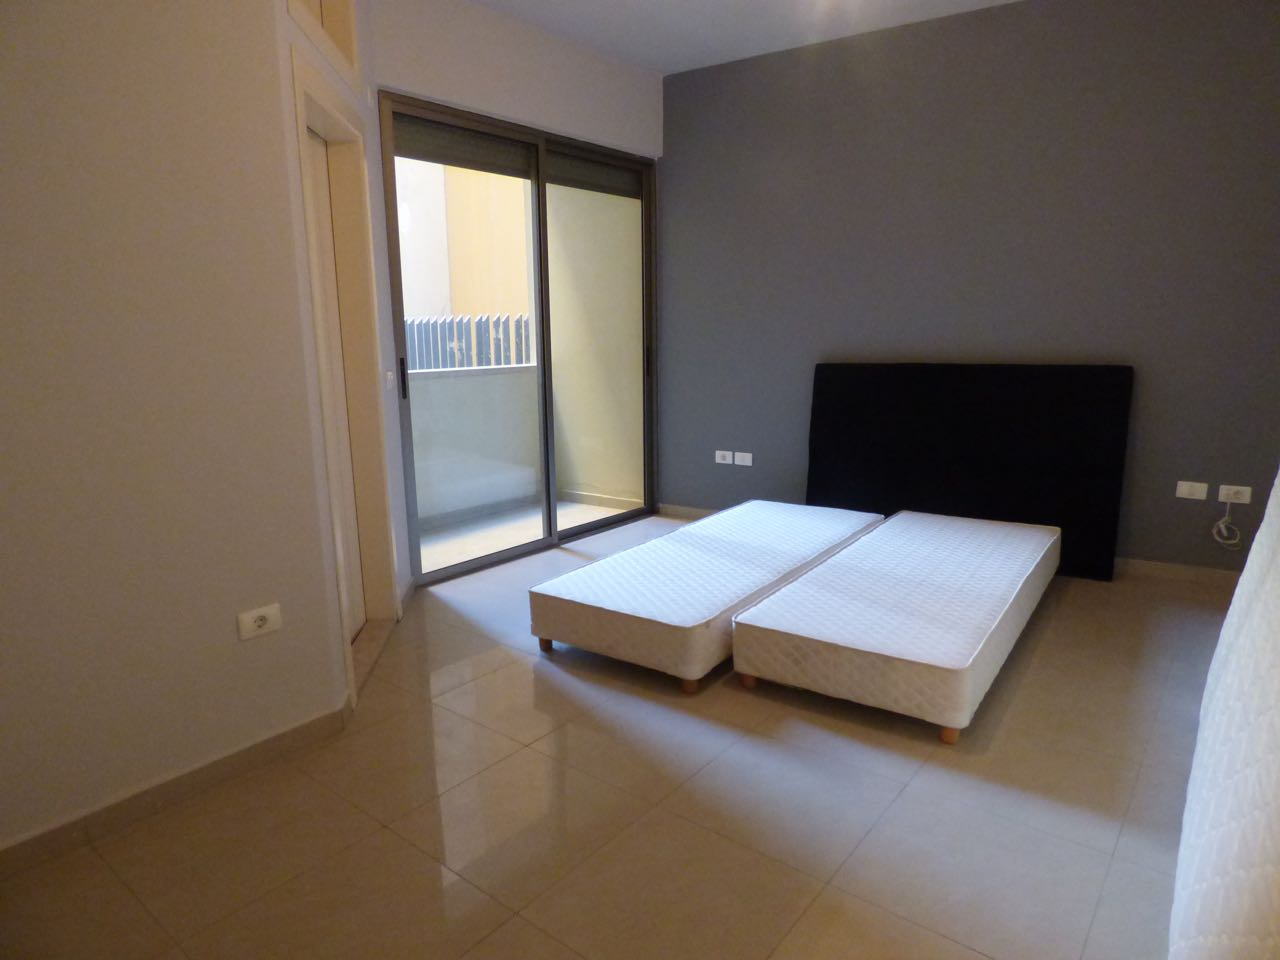 Apartment for rent- Tabaris - Achrafieh - Beirut - Lebanon